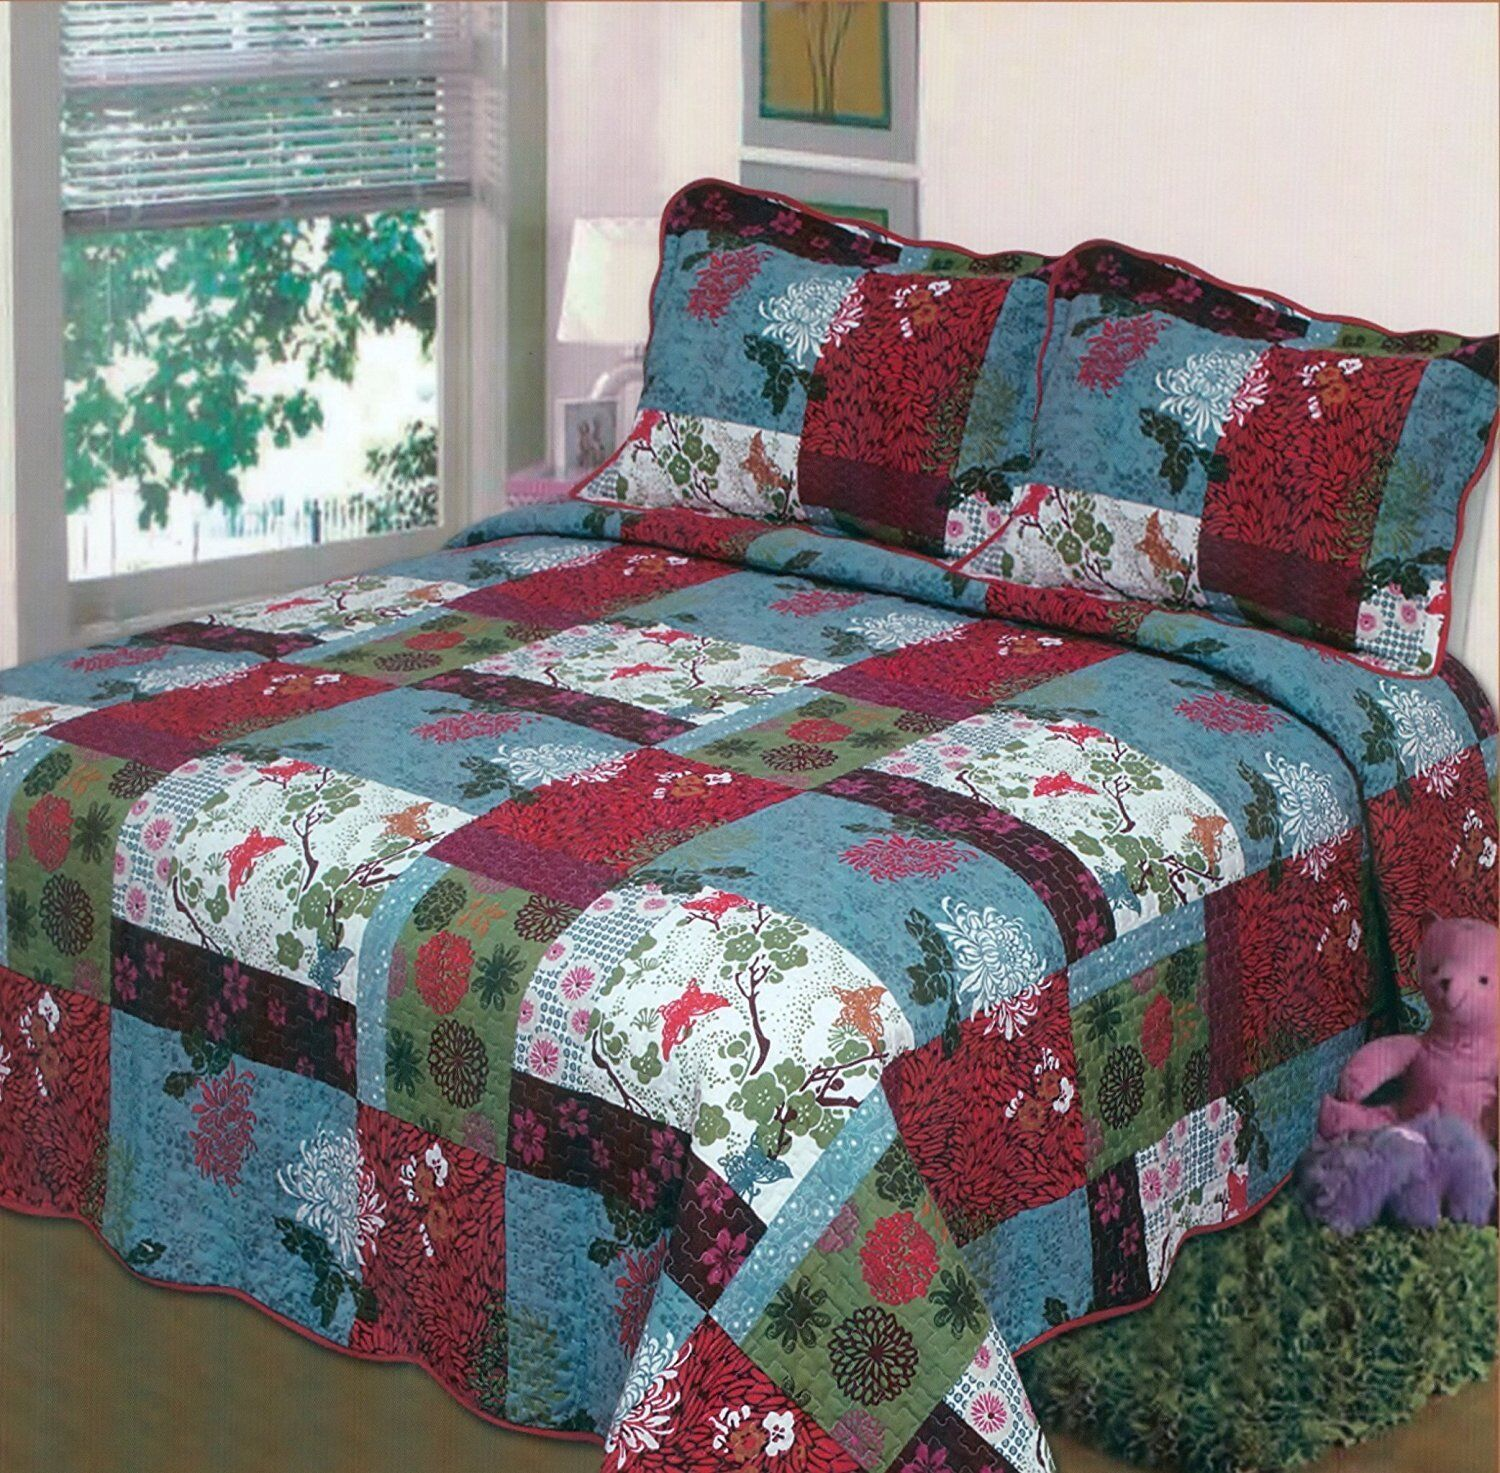 Fancy Linen 3pc Queen, King Bedspread Bed Cover Floral Red B